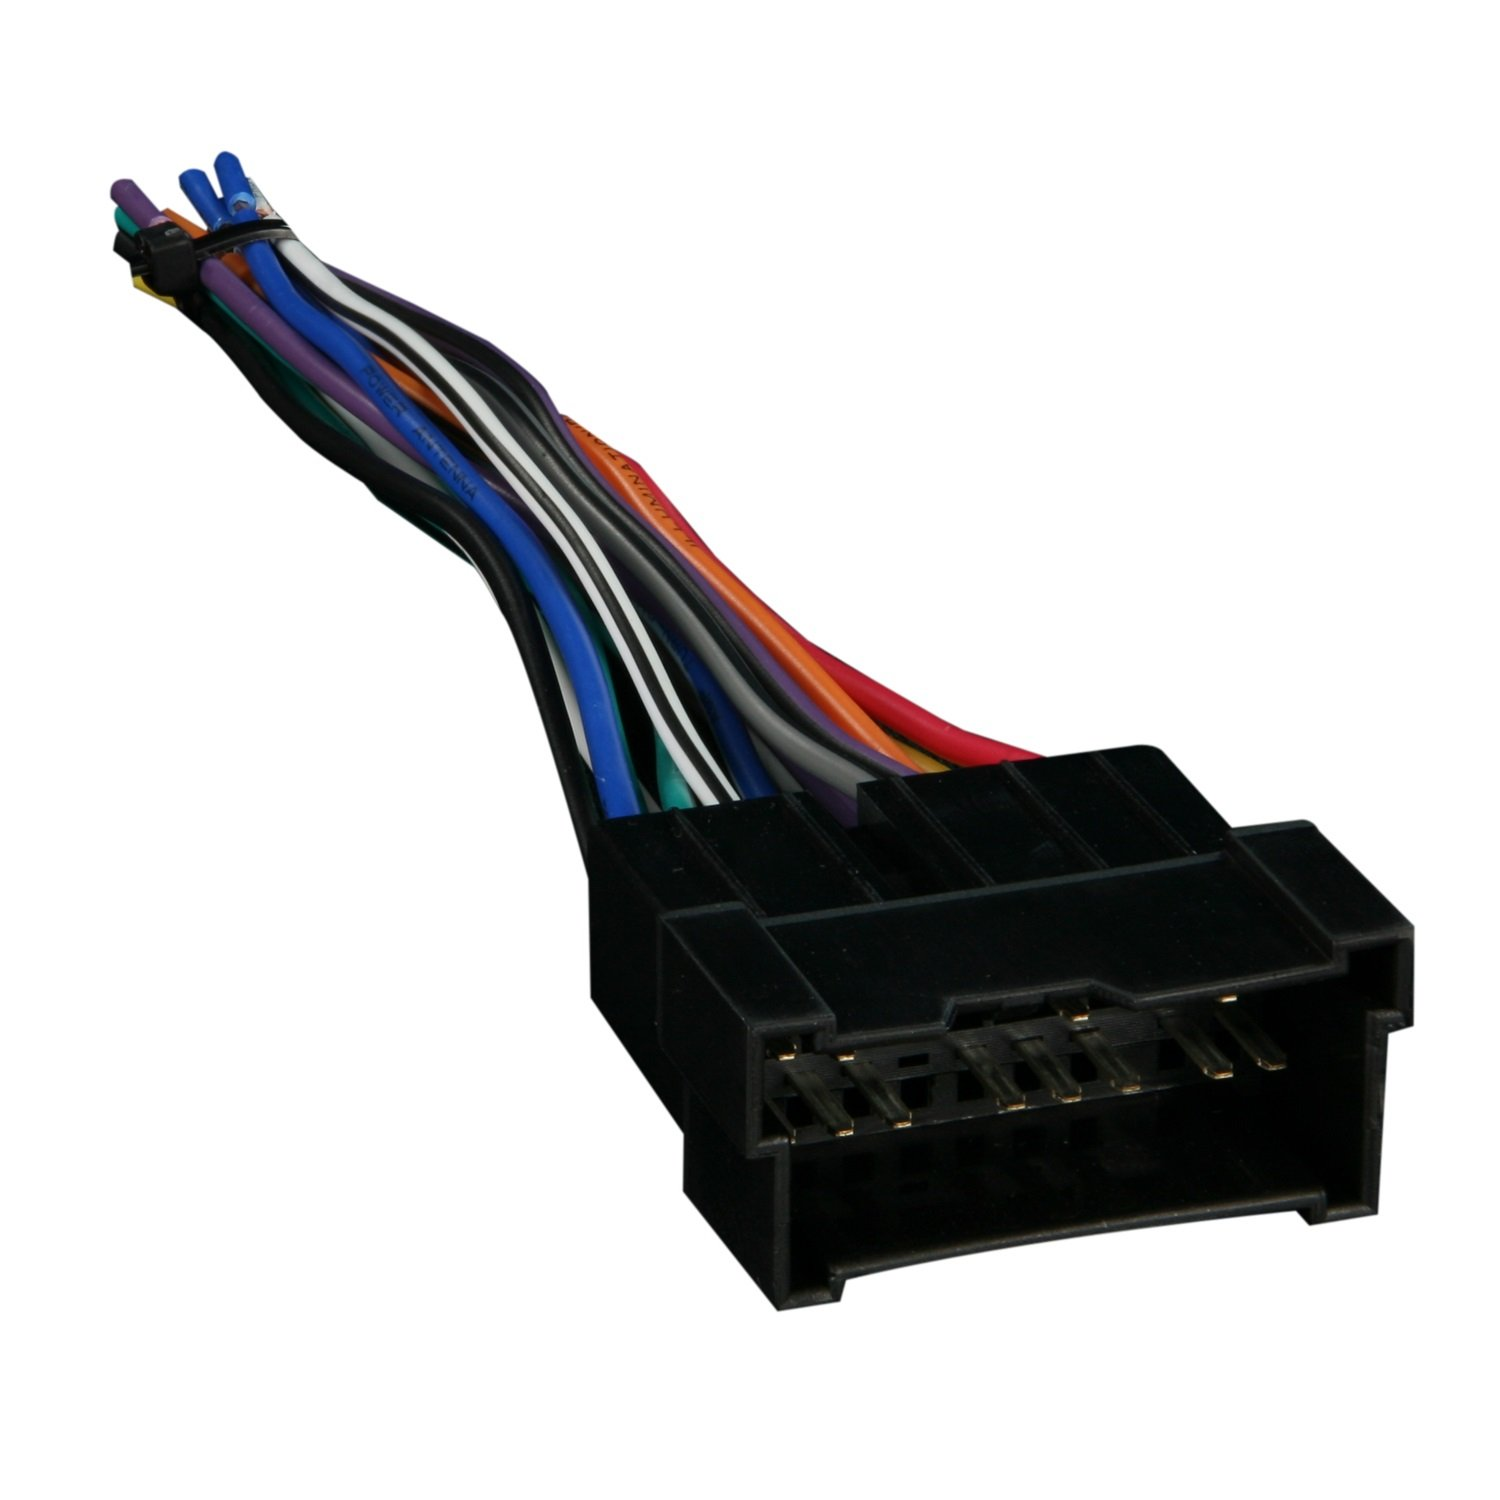 617yeBmOquL._SL1500_ amazon com metra 70 7301 radio wiring harness for hyundai kia 99 jvc wiring harness color coating at readyjetset.co